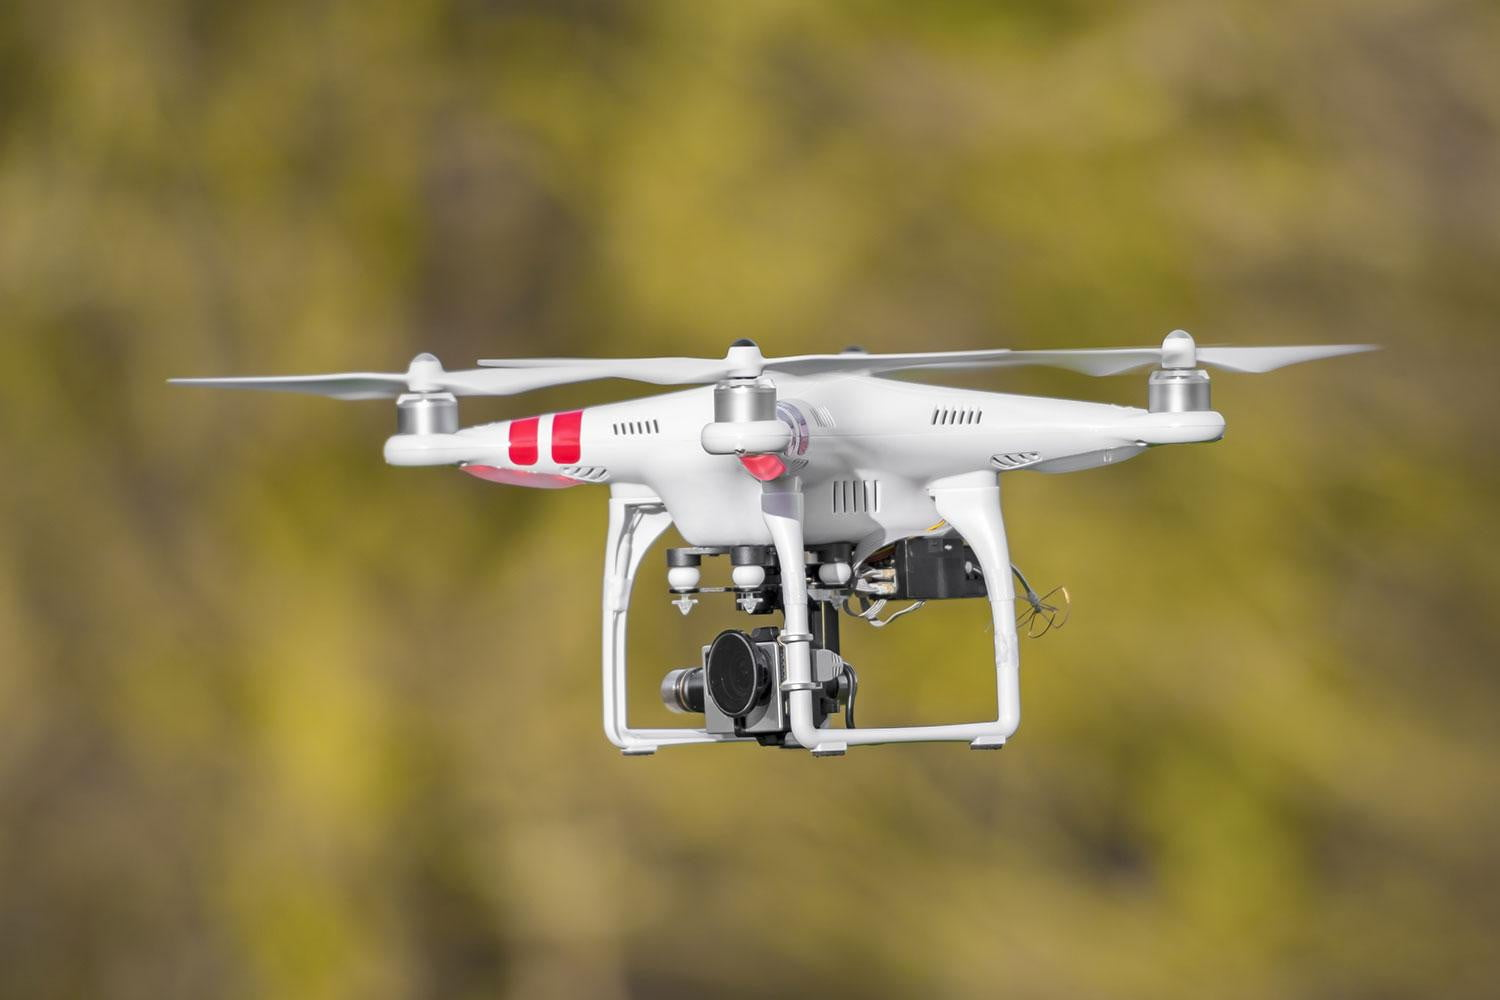 10 Dumb Uses Of Drones That Ruin For Everyone